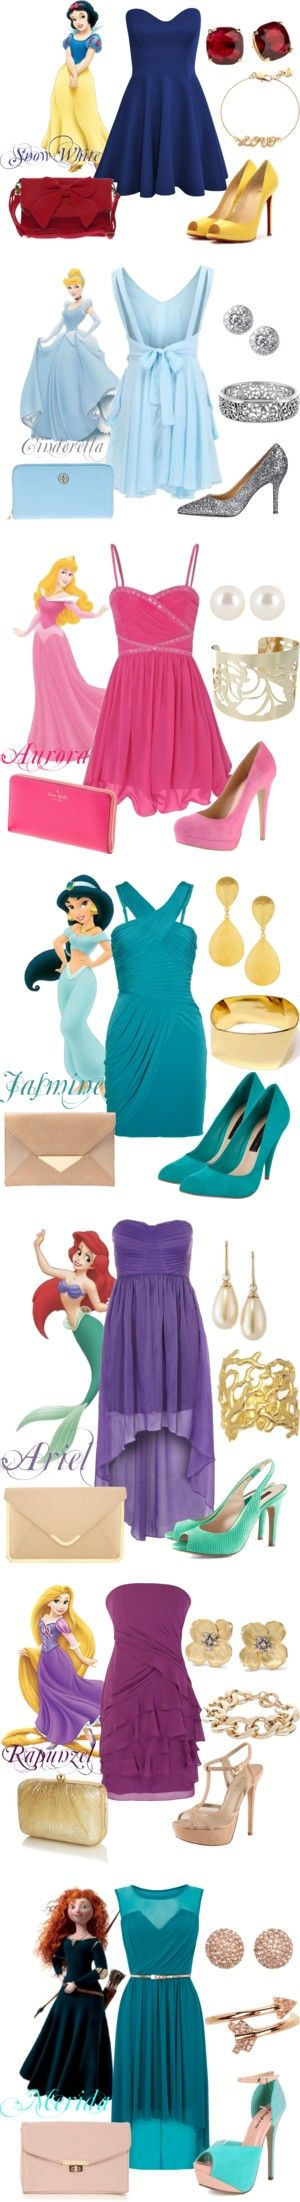 """""""Disney Princess Prom Outfits"""" by natihasi on Polyvore"""